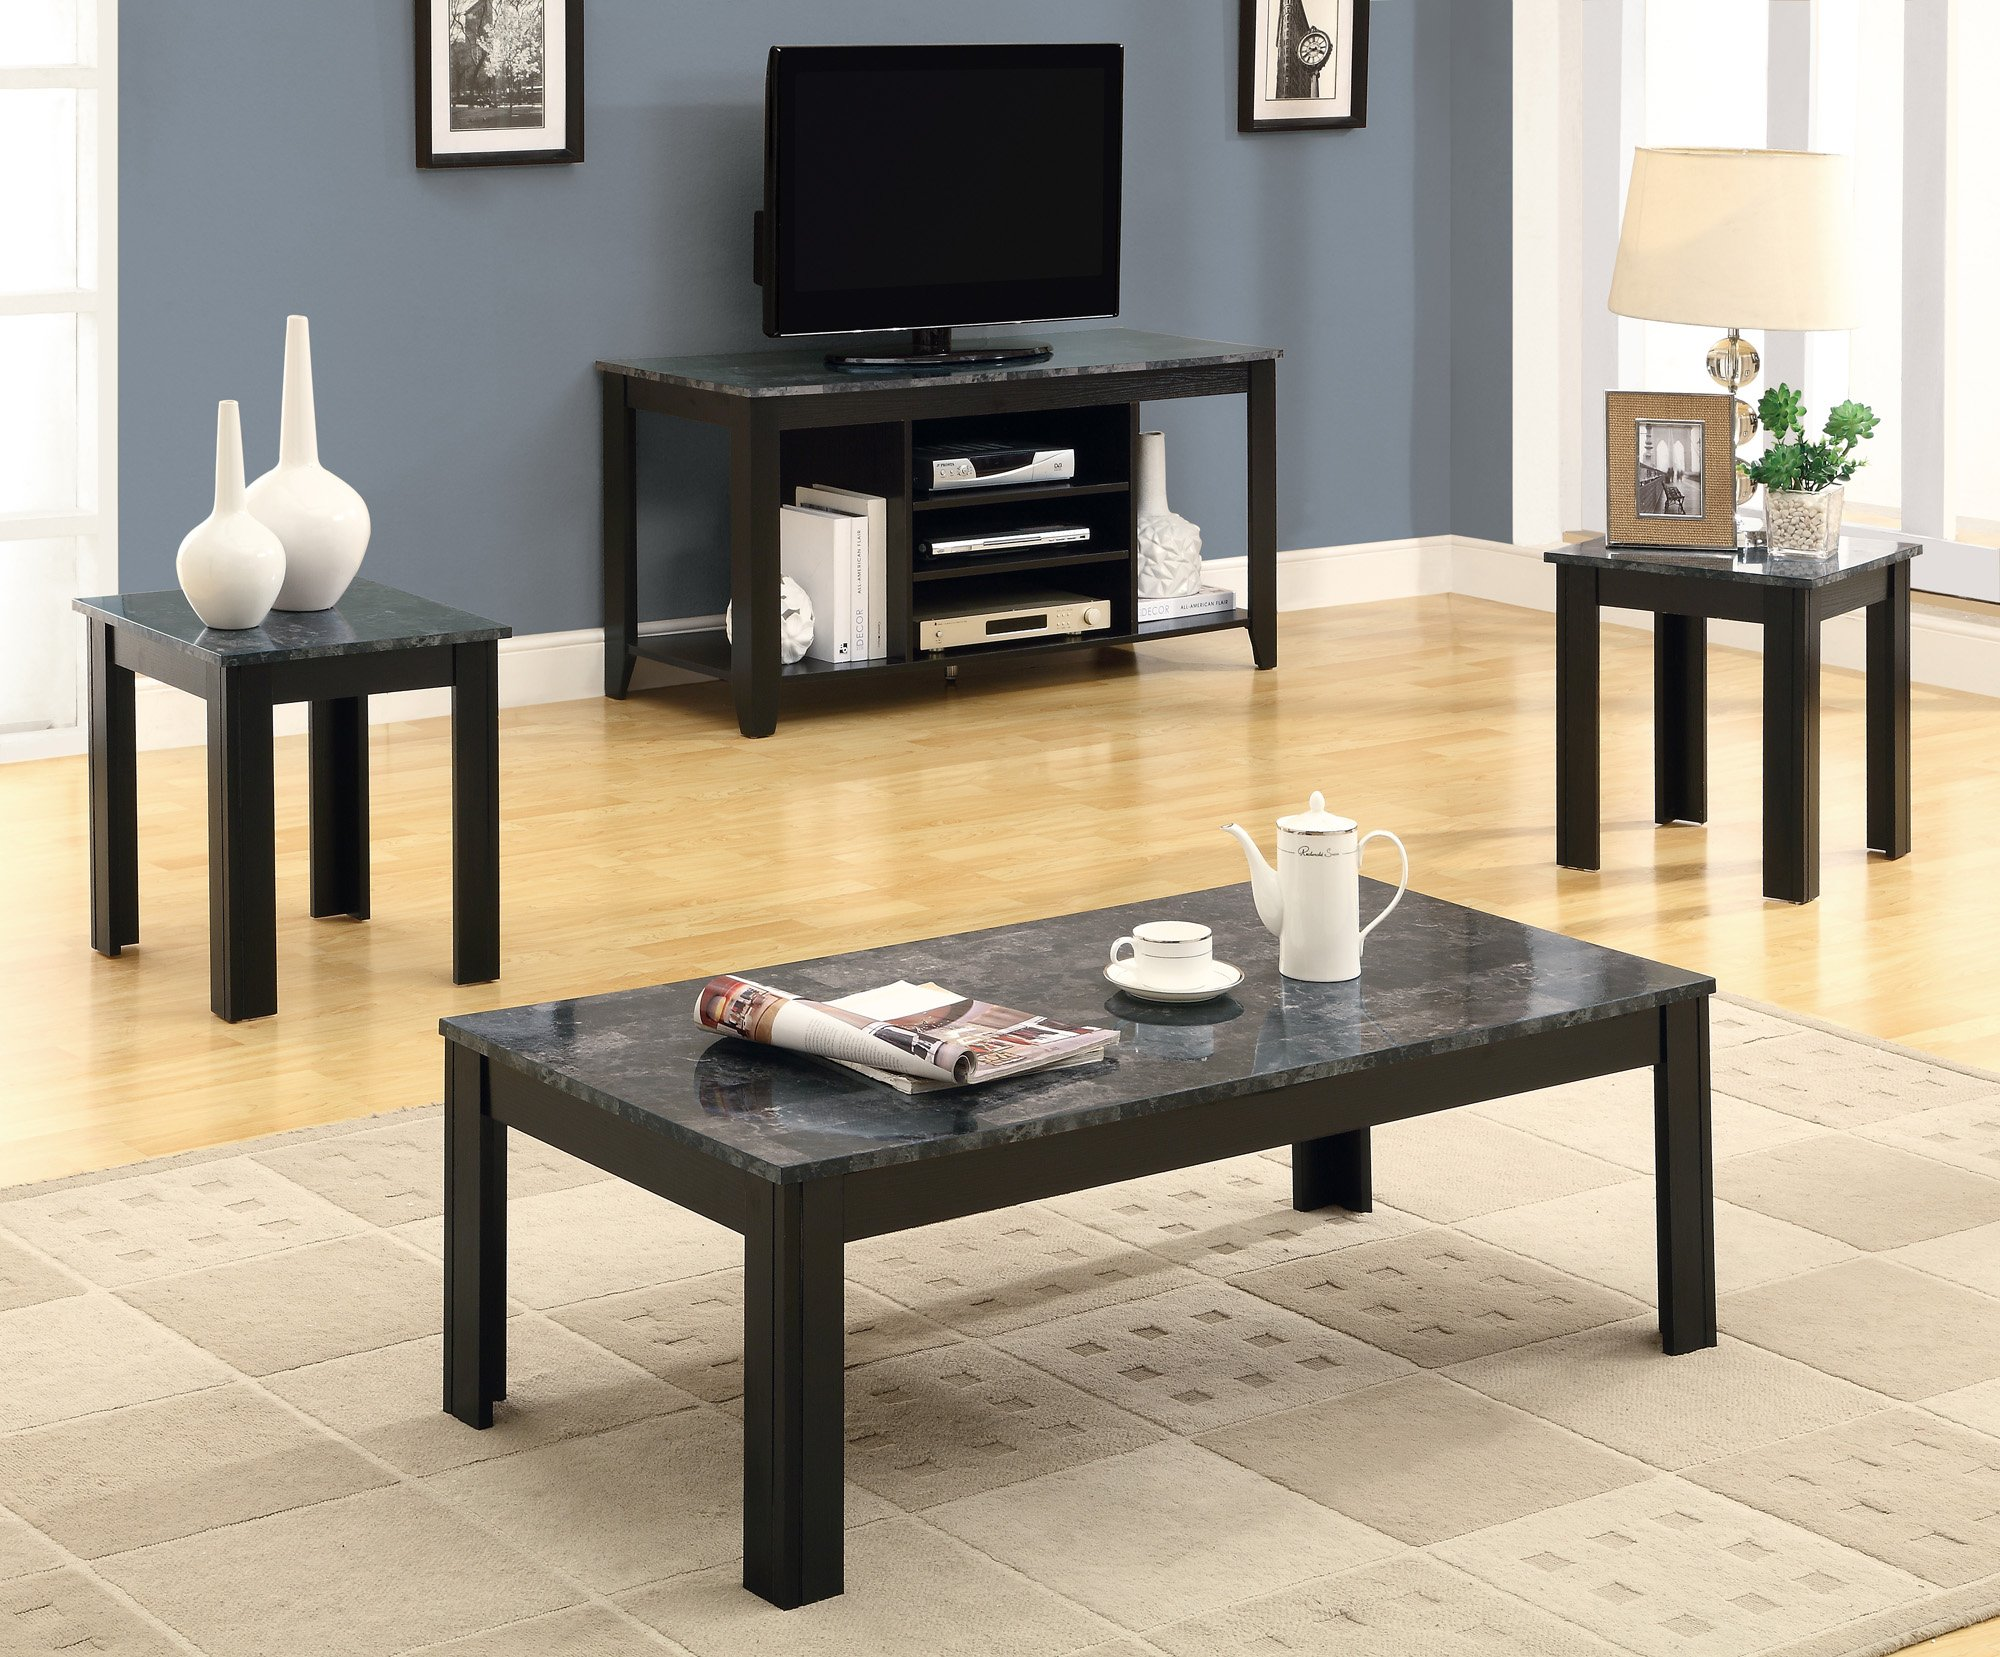 Monarch Specialties Marble-Look Top 3-Piece Table Set, Black/Grey by Monarch Specialties